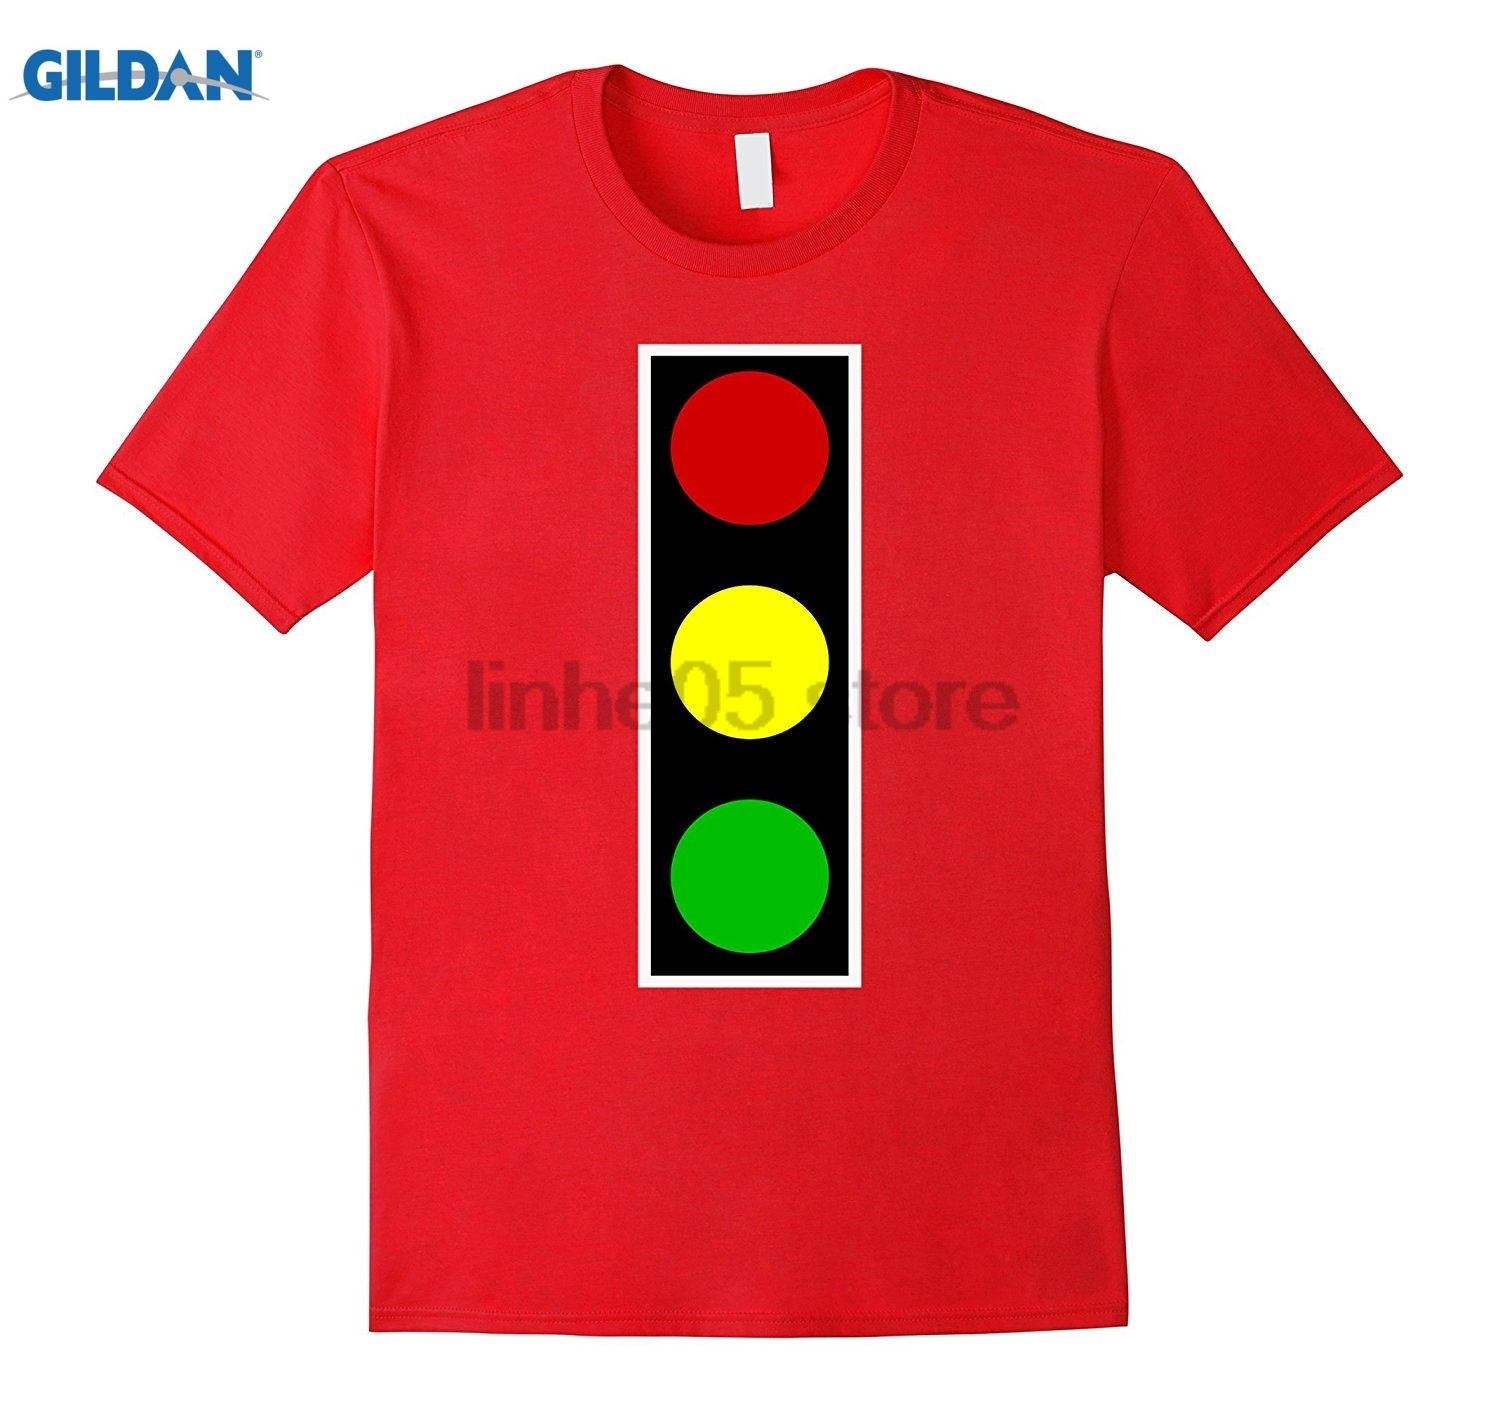 GILDAN Traffic signal light fancy dress costume tshirt glasses Womens T-shirt